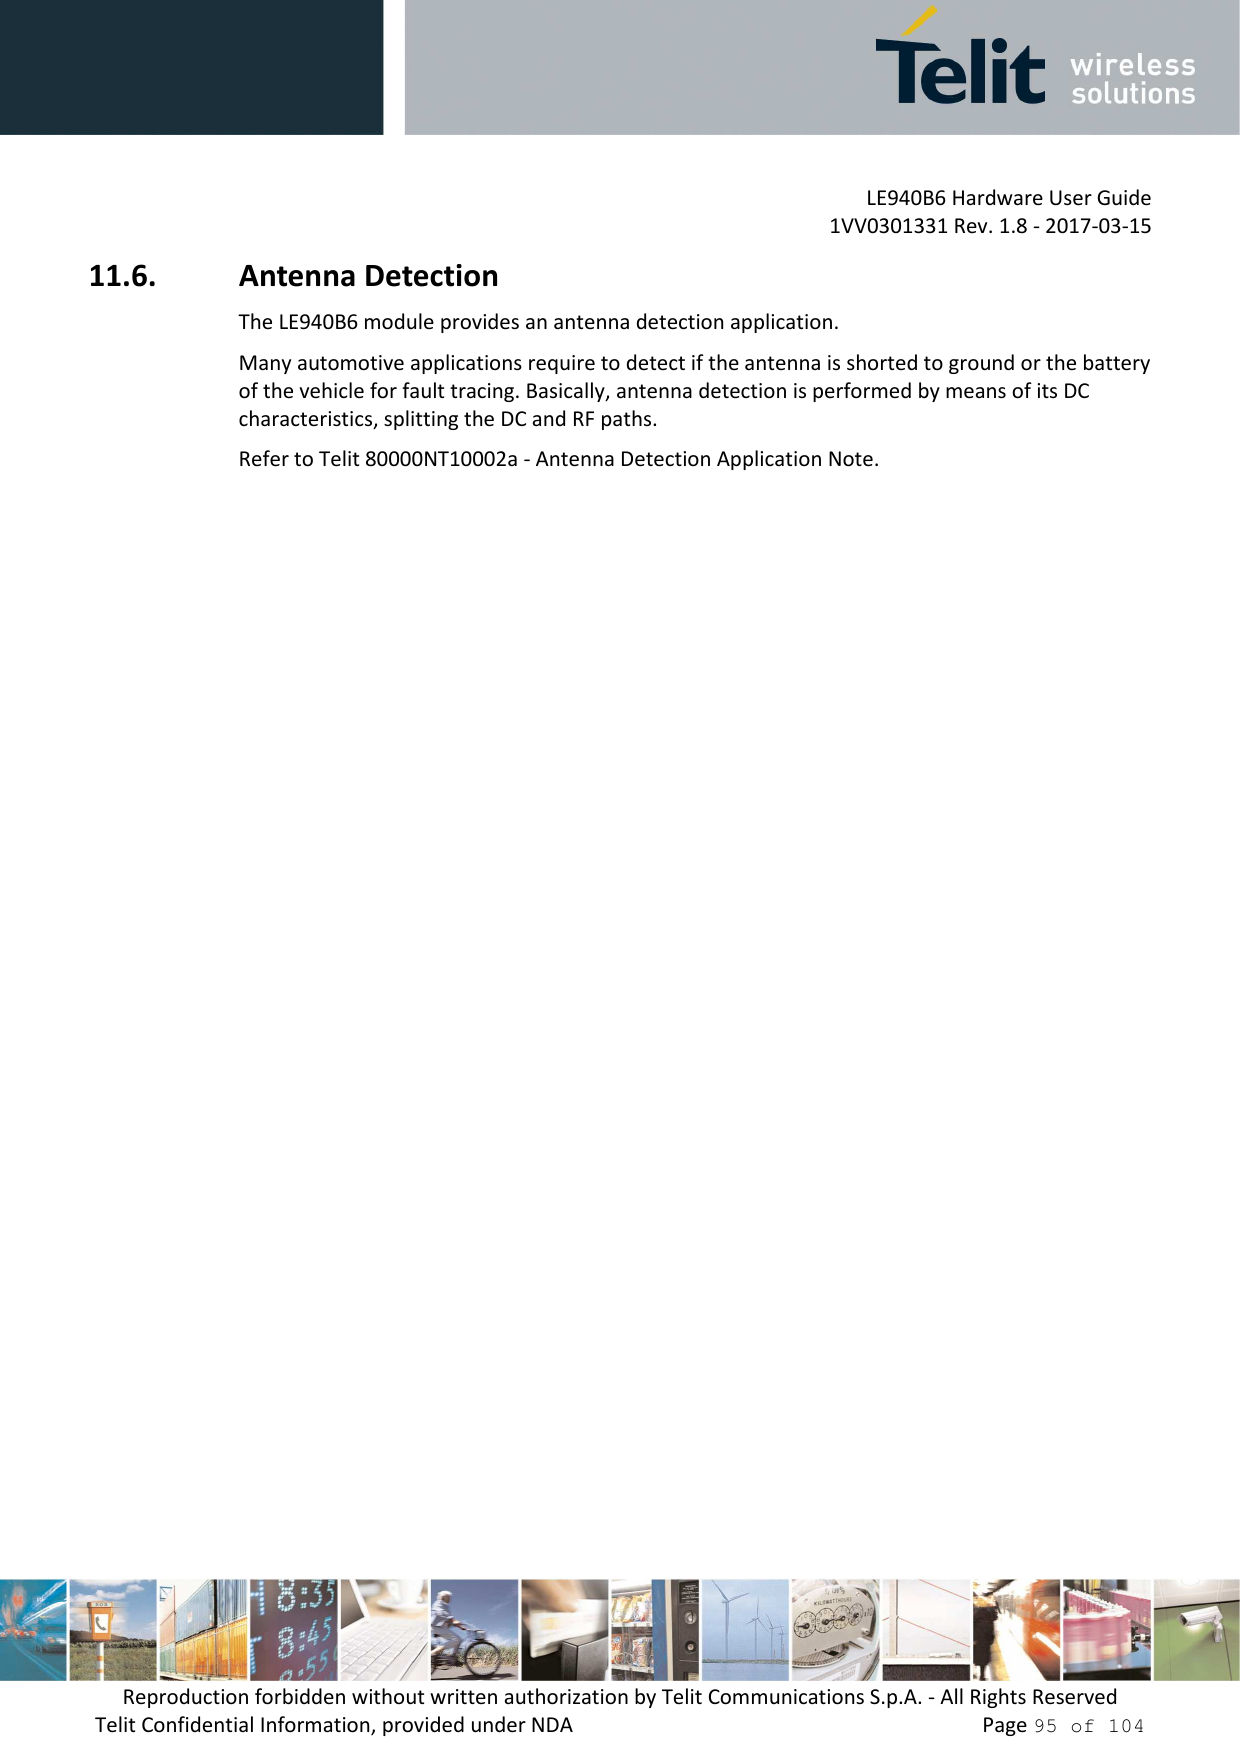 LE940B6 Hardware User Guide     1VV0301331 Rev. 1.8 - 2017-03-15 Reproduction forbidden without written authorization by Telit Communications S.p.A. - All Rights Reserved Telit Confidential Information, provided under NDA                 Page 95 of 104 11.6. Antenna Detection The LE940B6 module provides an antenna detection application. Many automotive applications require to detect if the antenna is shorted to ground or the battery of the vehicle for fault tracing. Basically, antenna detection is performed by means of its DC characteristics, splitting the DC and RF paths. Refer to Telit 80000NT10002a - Antenna Detection Application Note.